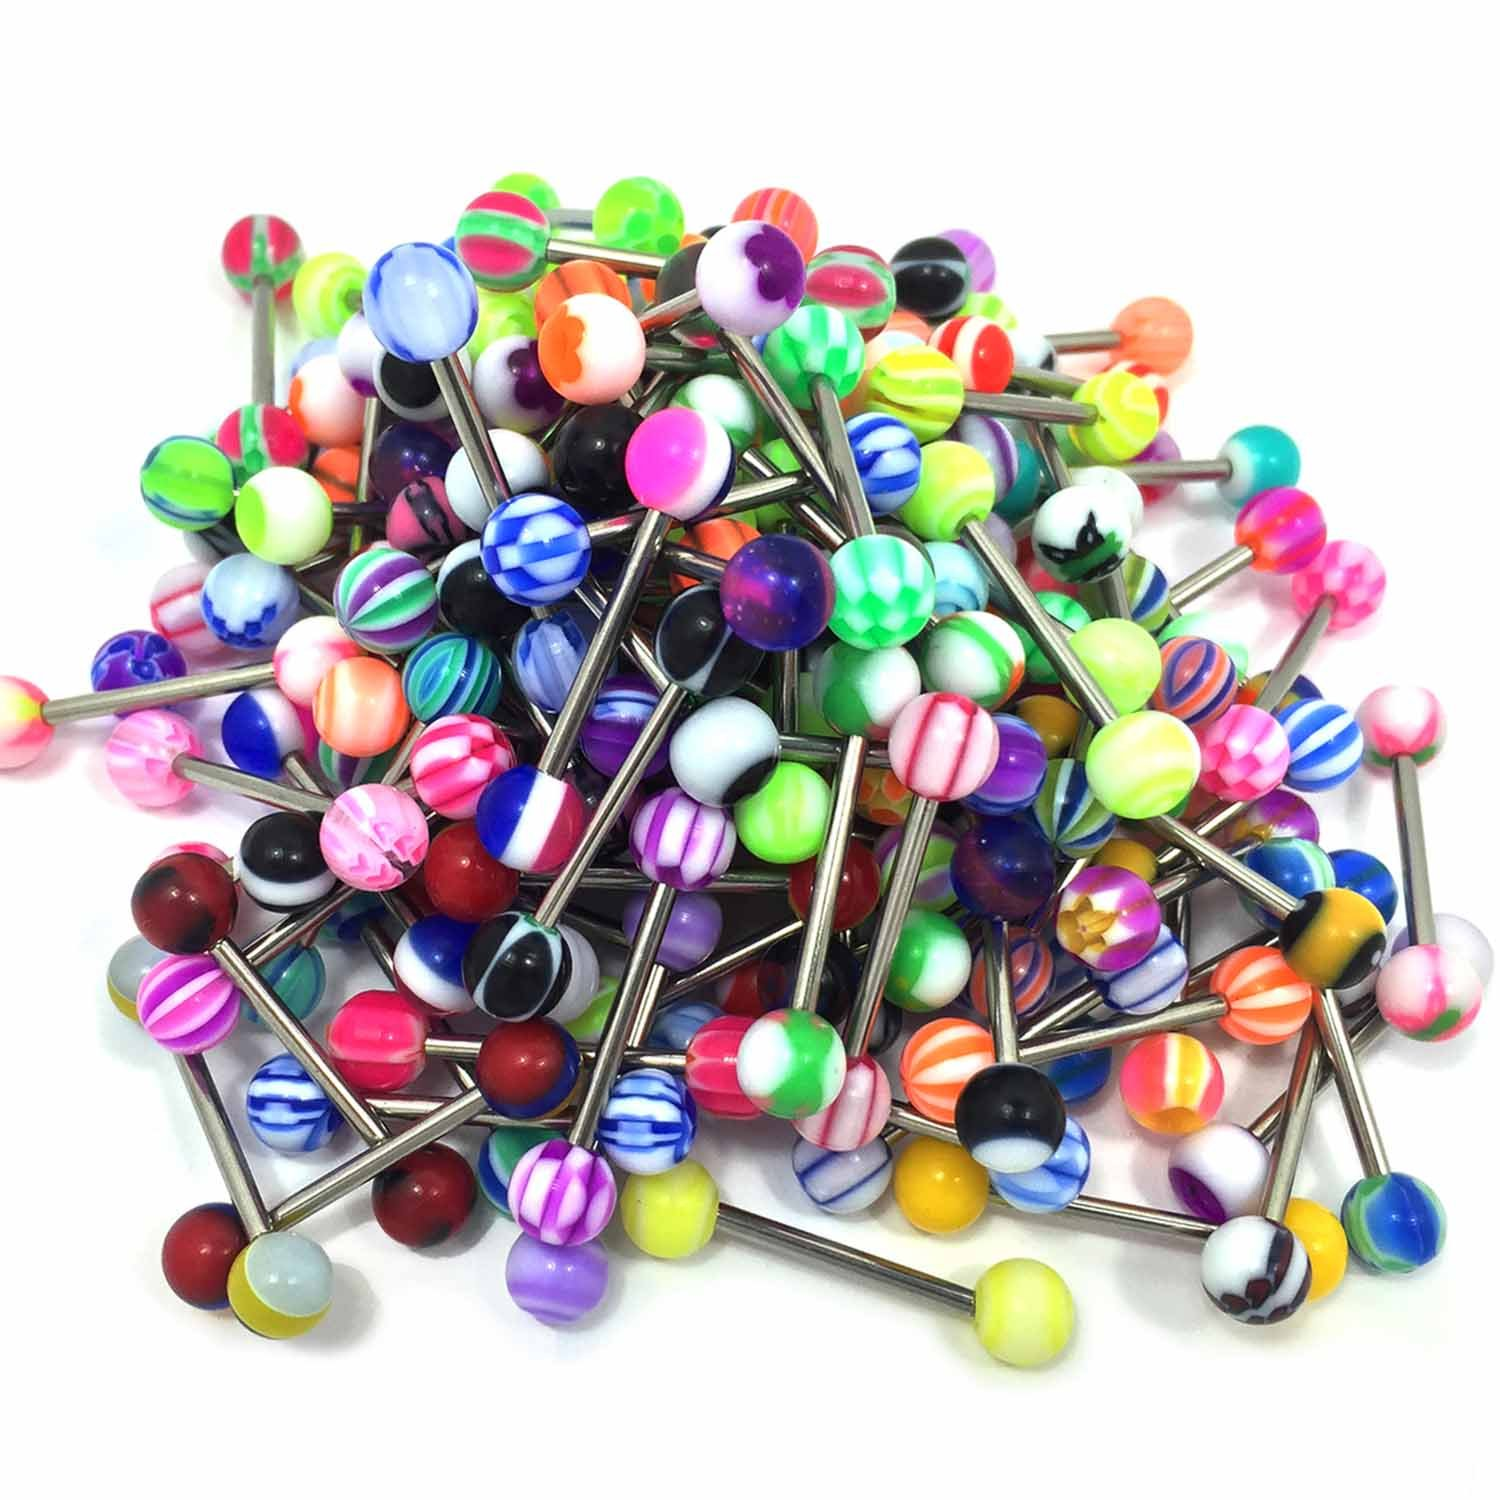 BodyJ4You 50PC Tongue Barbells Nipple Rings 14G Mix Acrylic Ball Steel Flexible Piercing Jewelry